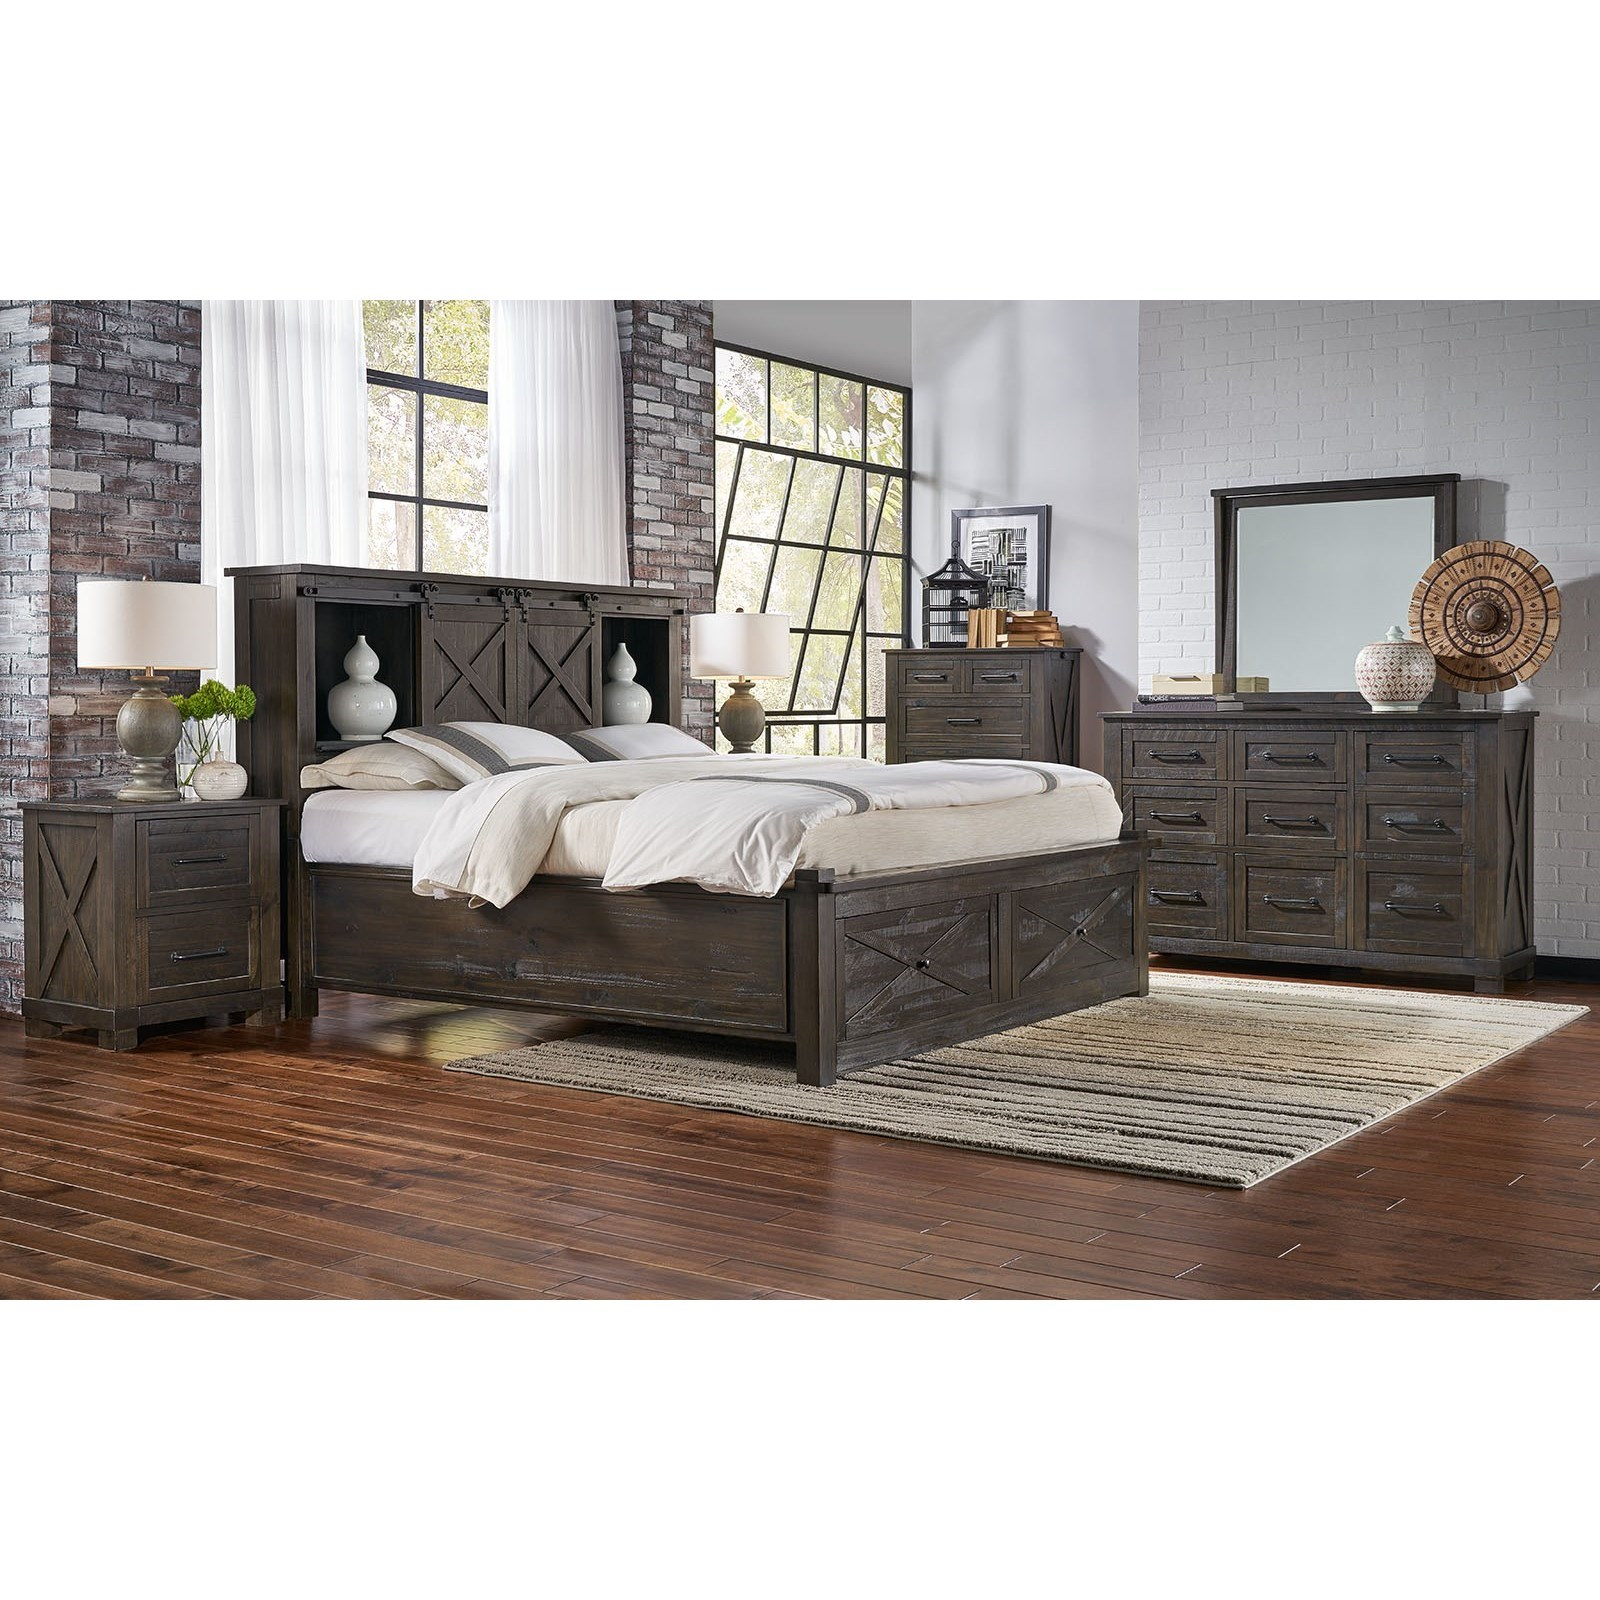 Aamerica Sun Valley Queen Size Storage Bed With Footboard